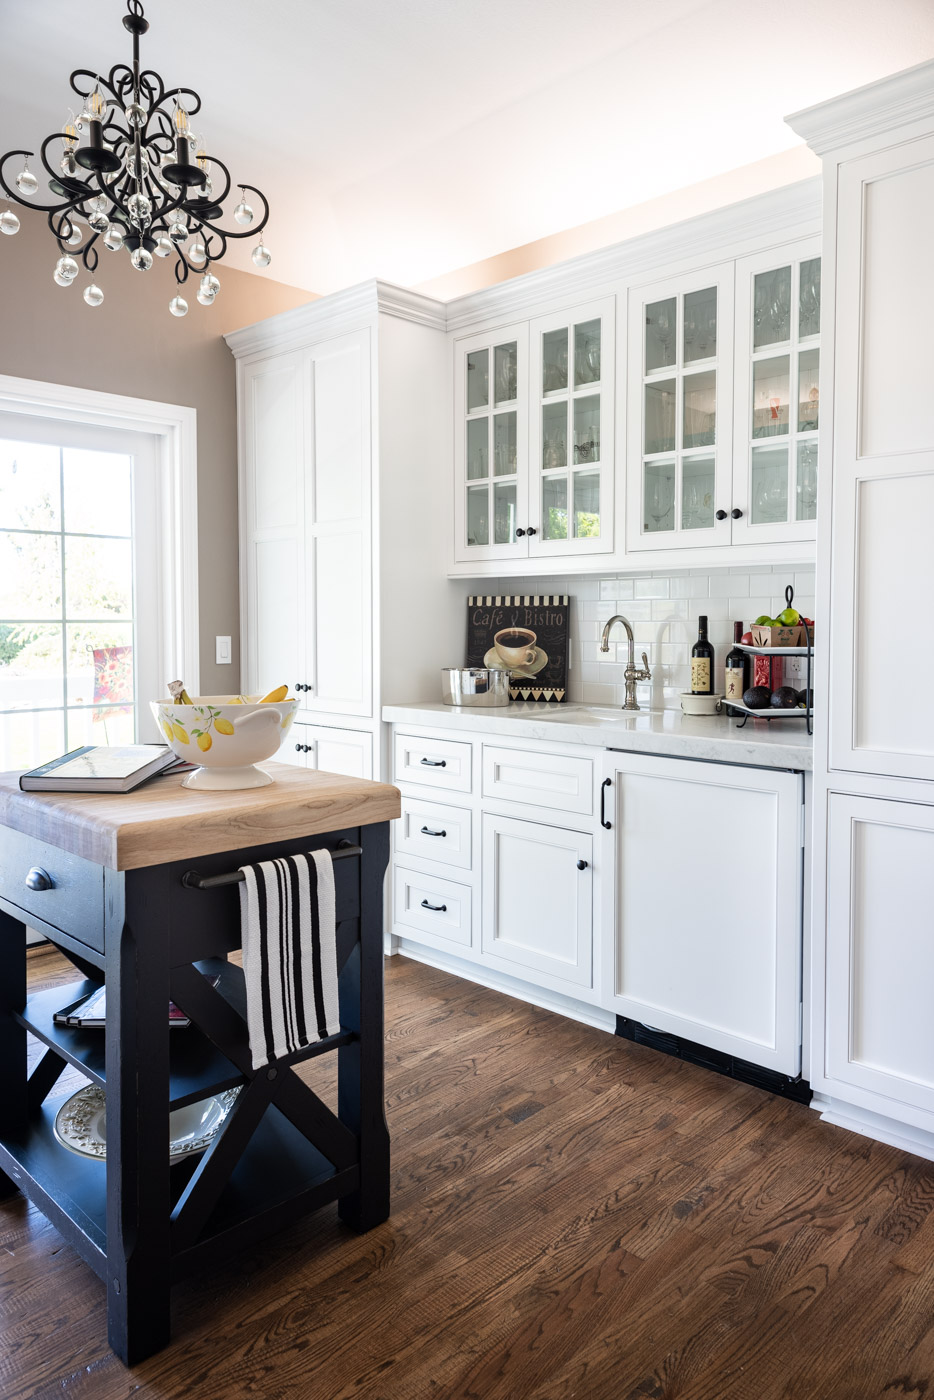 A tea room single-wall kitchen layout used as a home bar with custom white painted cabinets